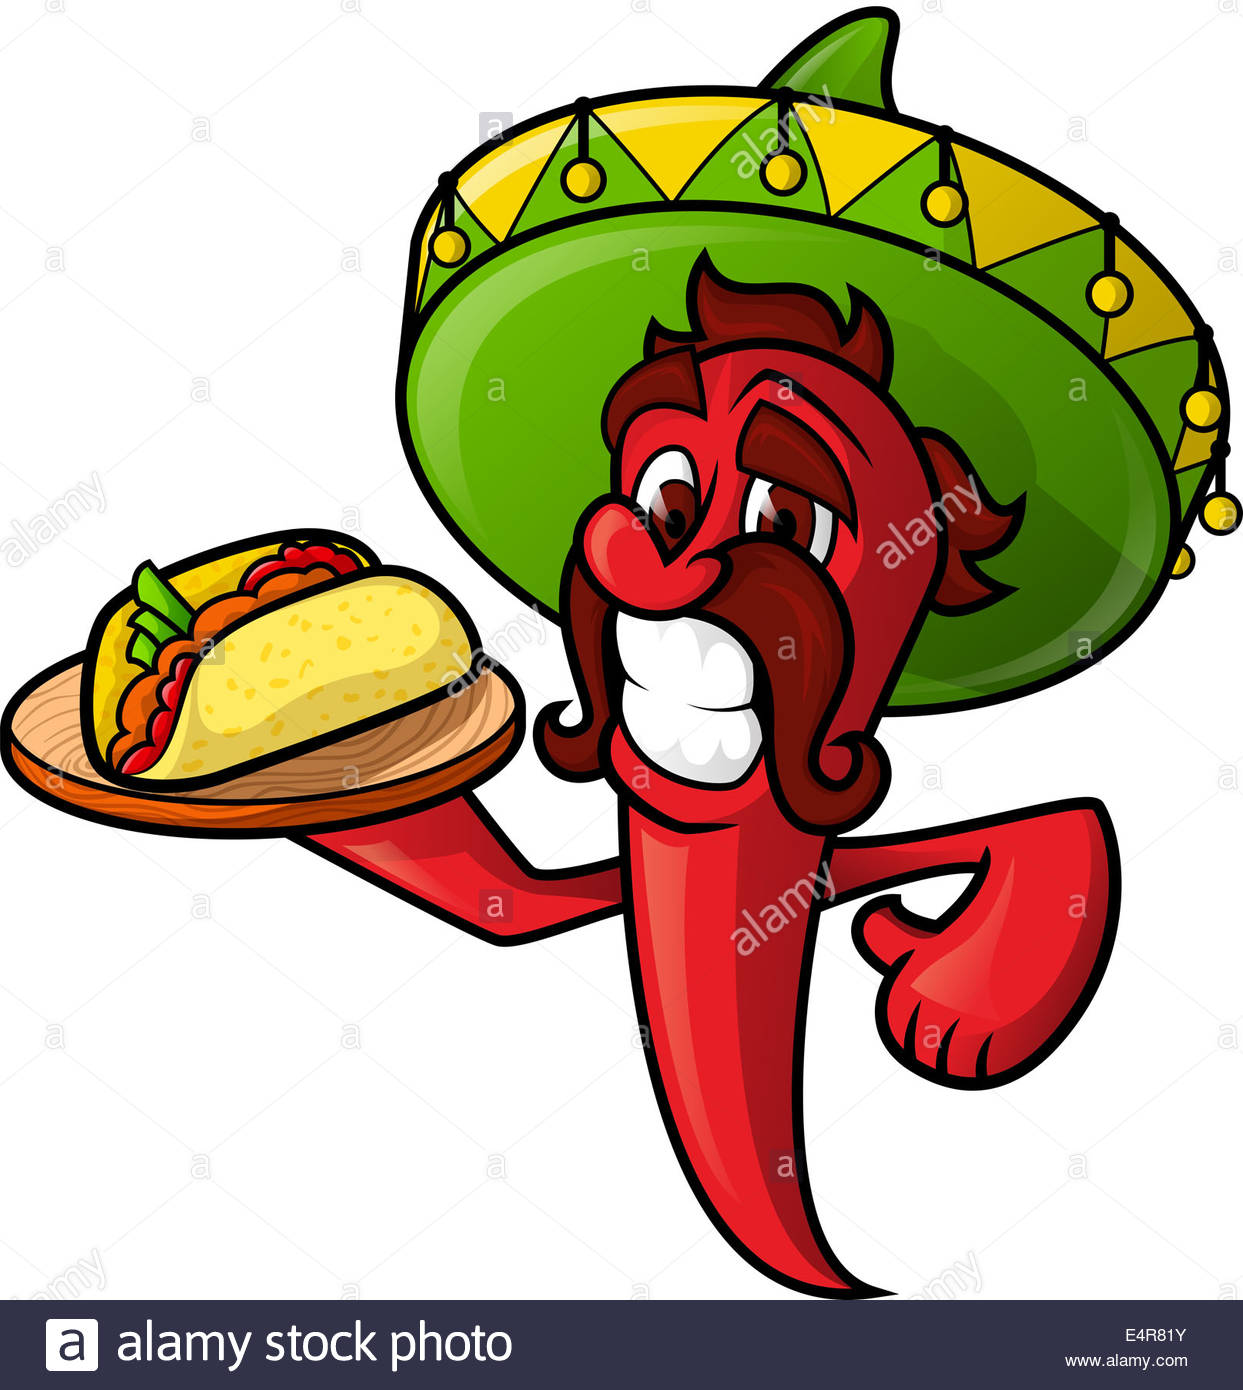 1243x1390 Mexican Food Clip Art Stock Photos Amp Mexican Food Clip Art Stock